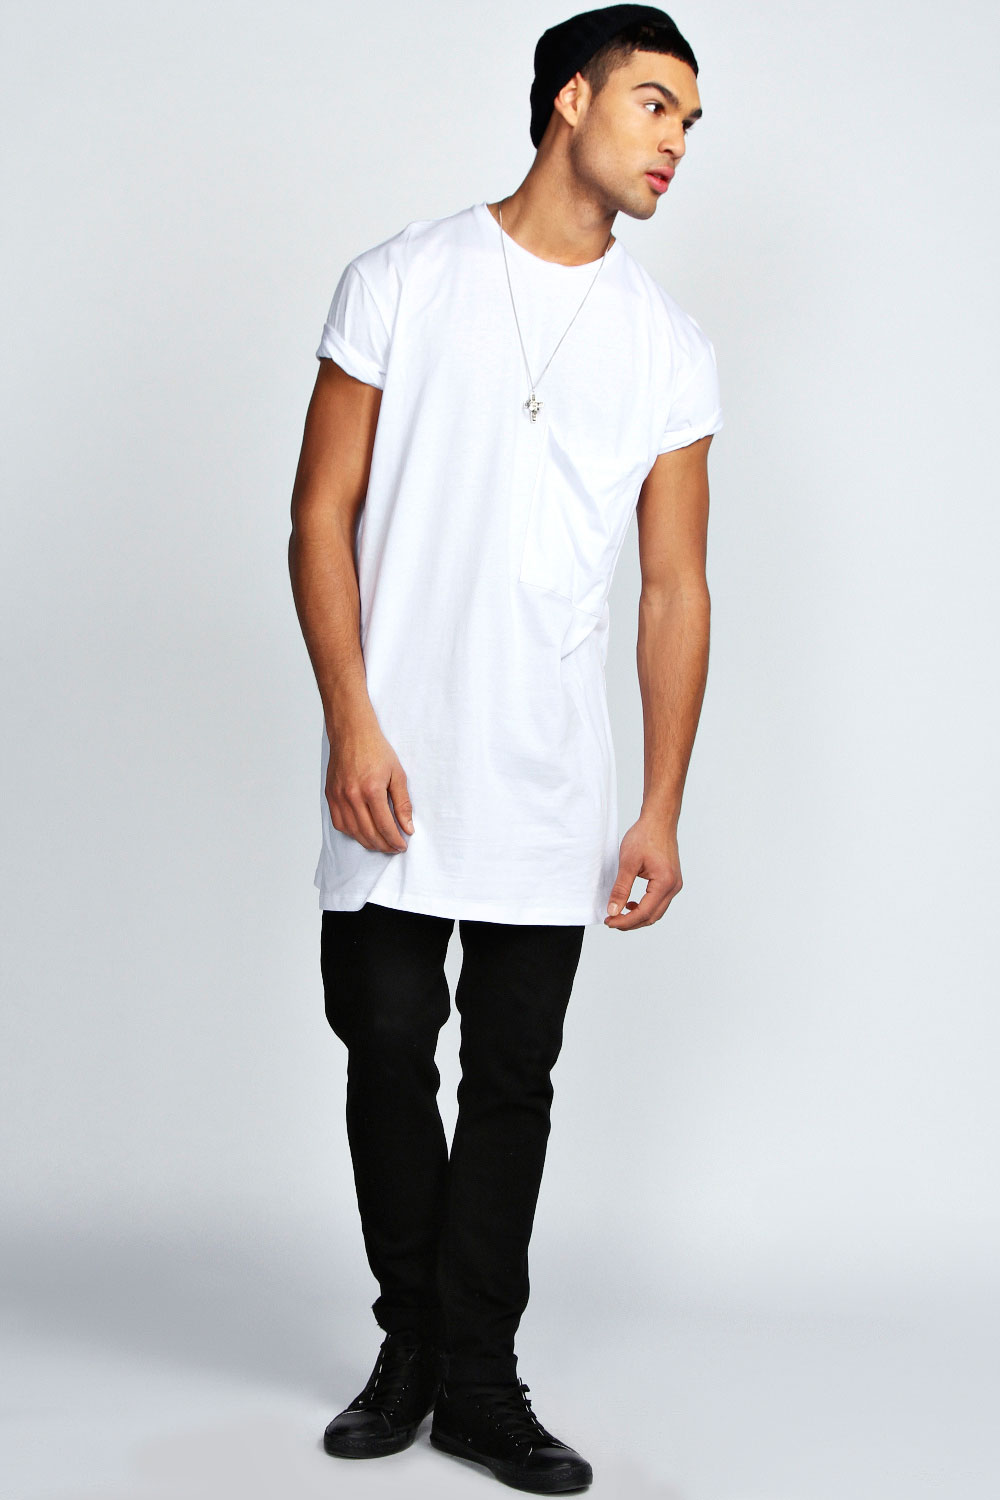 boohoo mens oversized pocket long line 100 cotton tee top t shirt. Black Bedroom Furniture Sets. Home Design Ideas